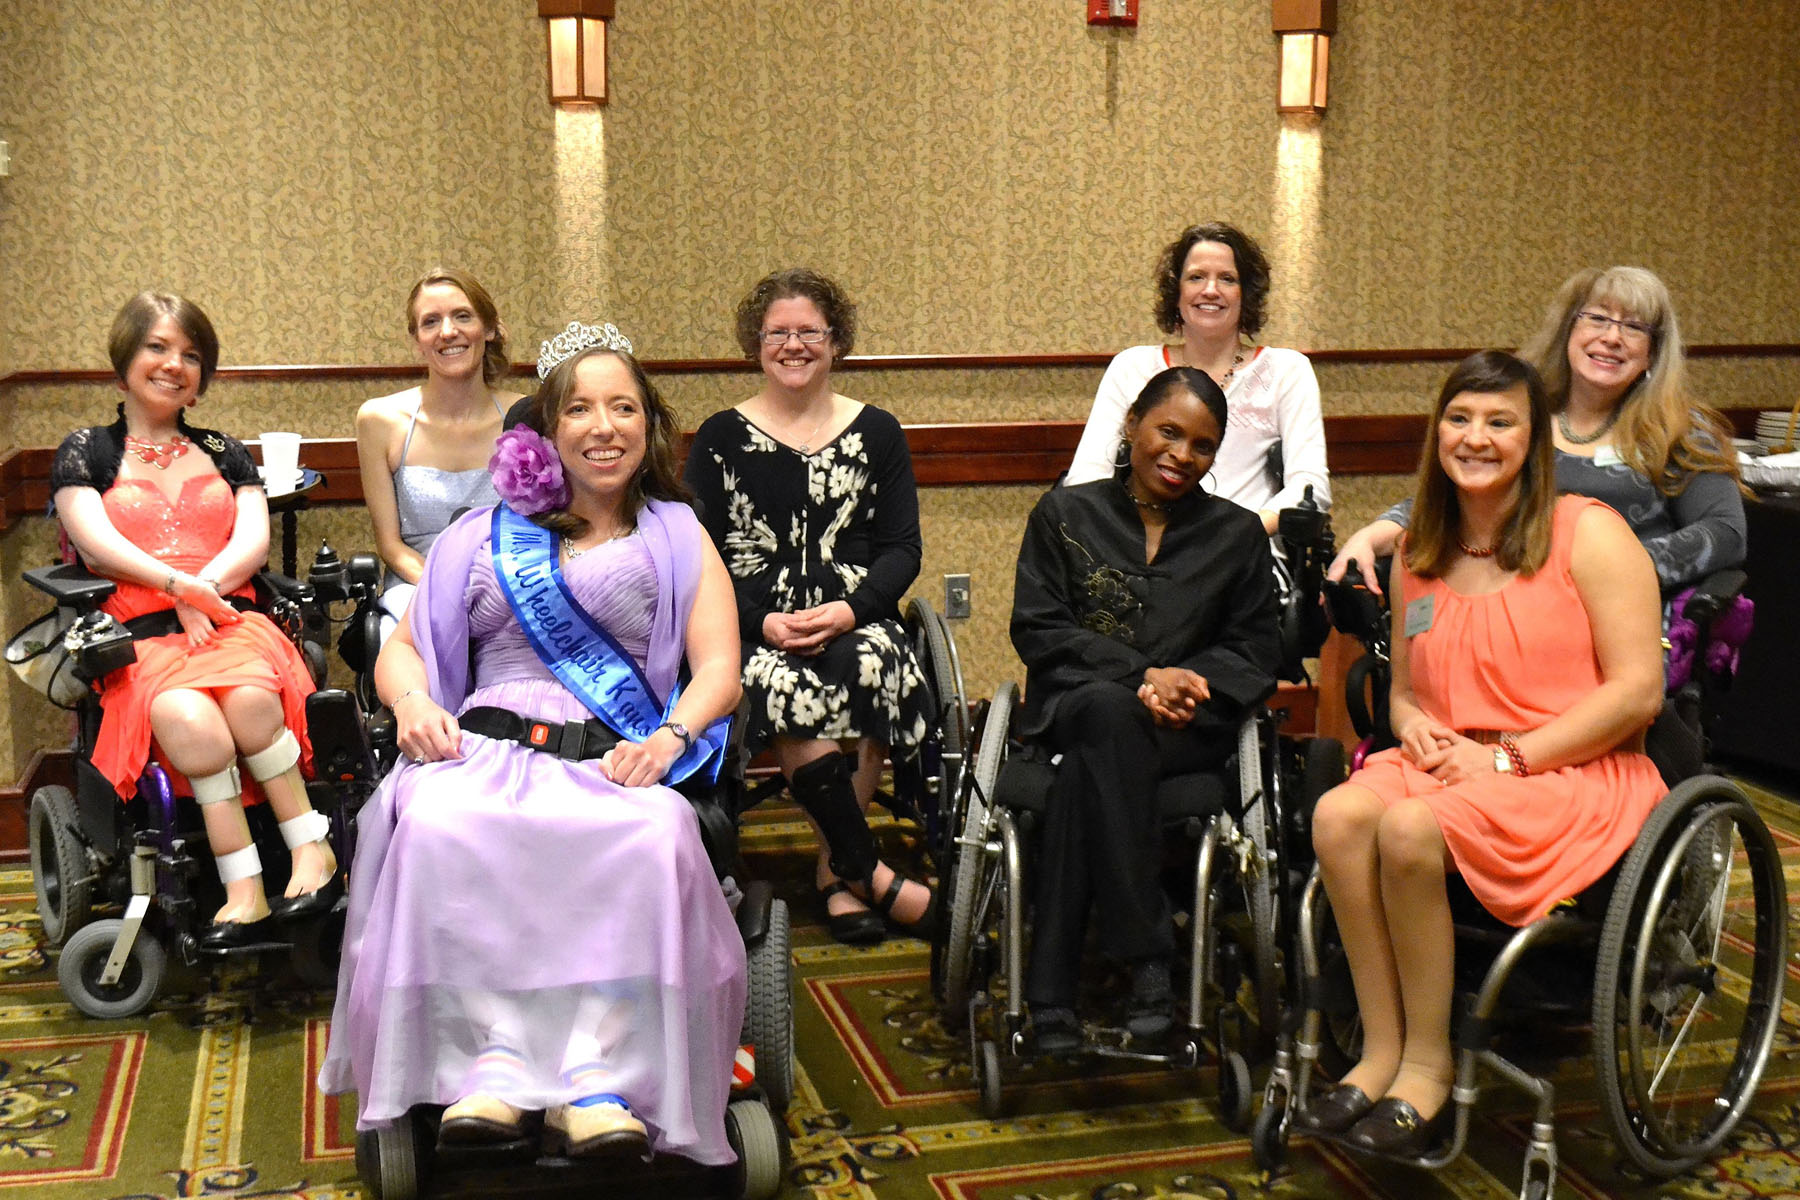 MWKS titleholders gather for a group photo